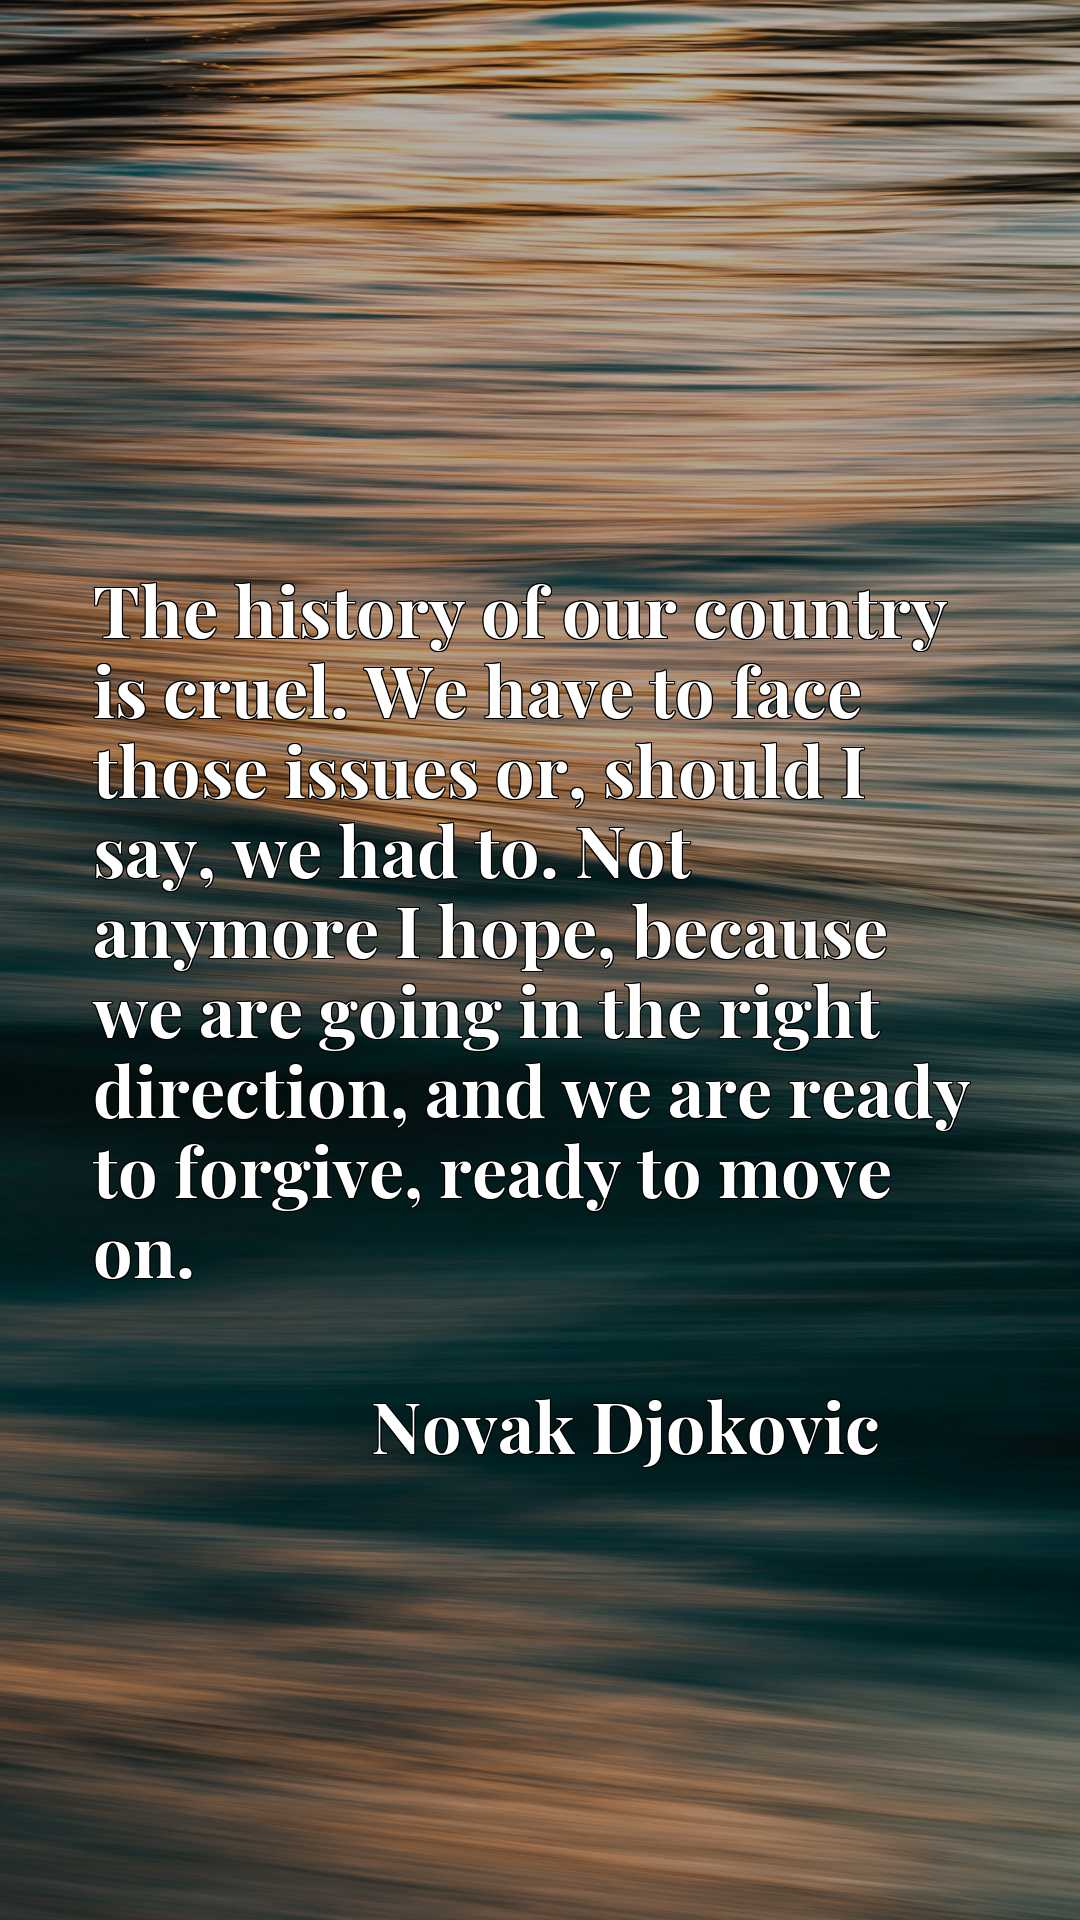 The history of our country is cruel. We have to face those issues or, should I say, we had to. Not anymore I hope, because we are going in the right direction, and we are ready to forgive, ready to move on.